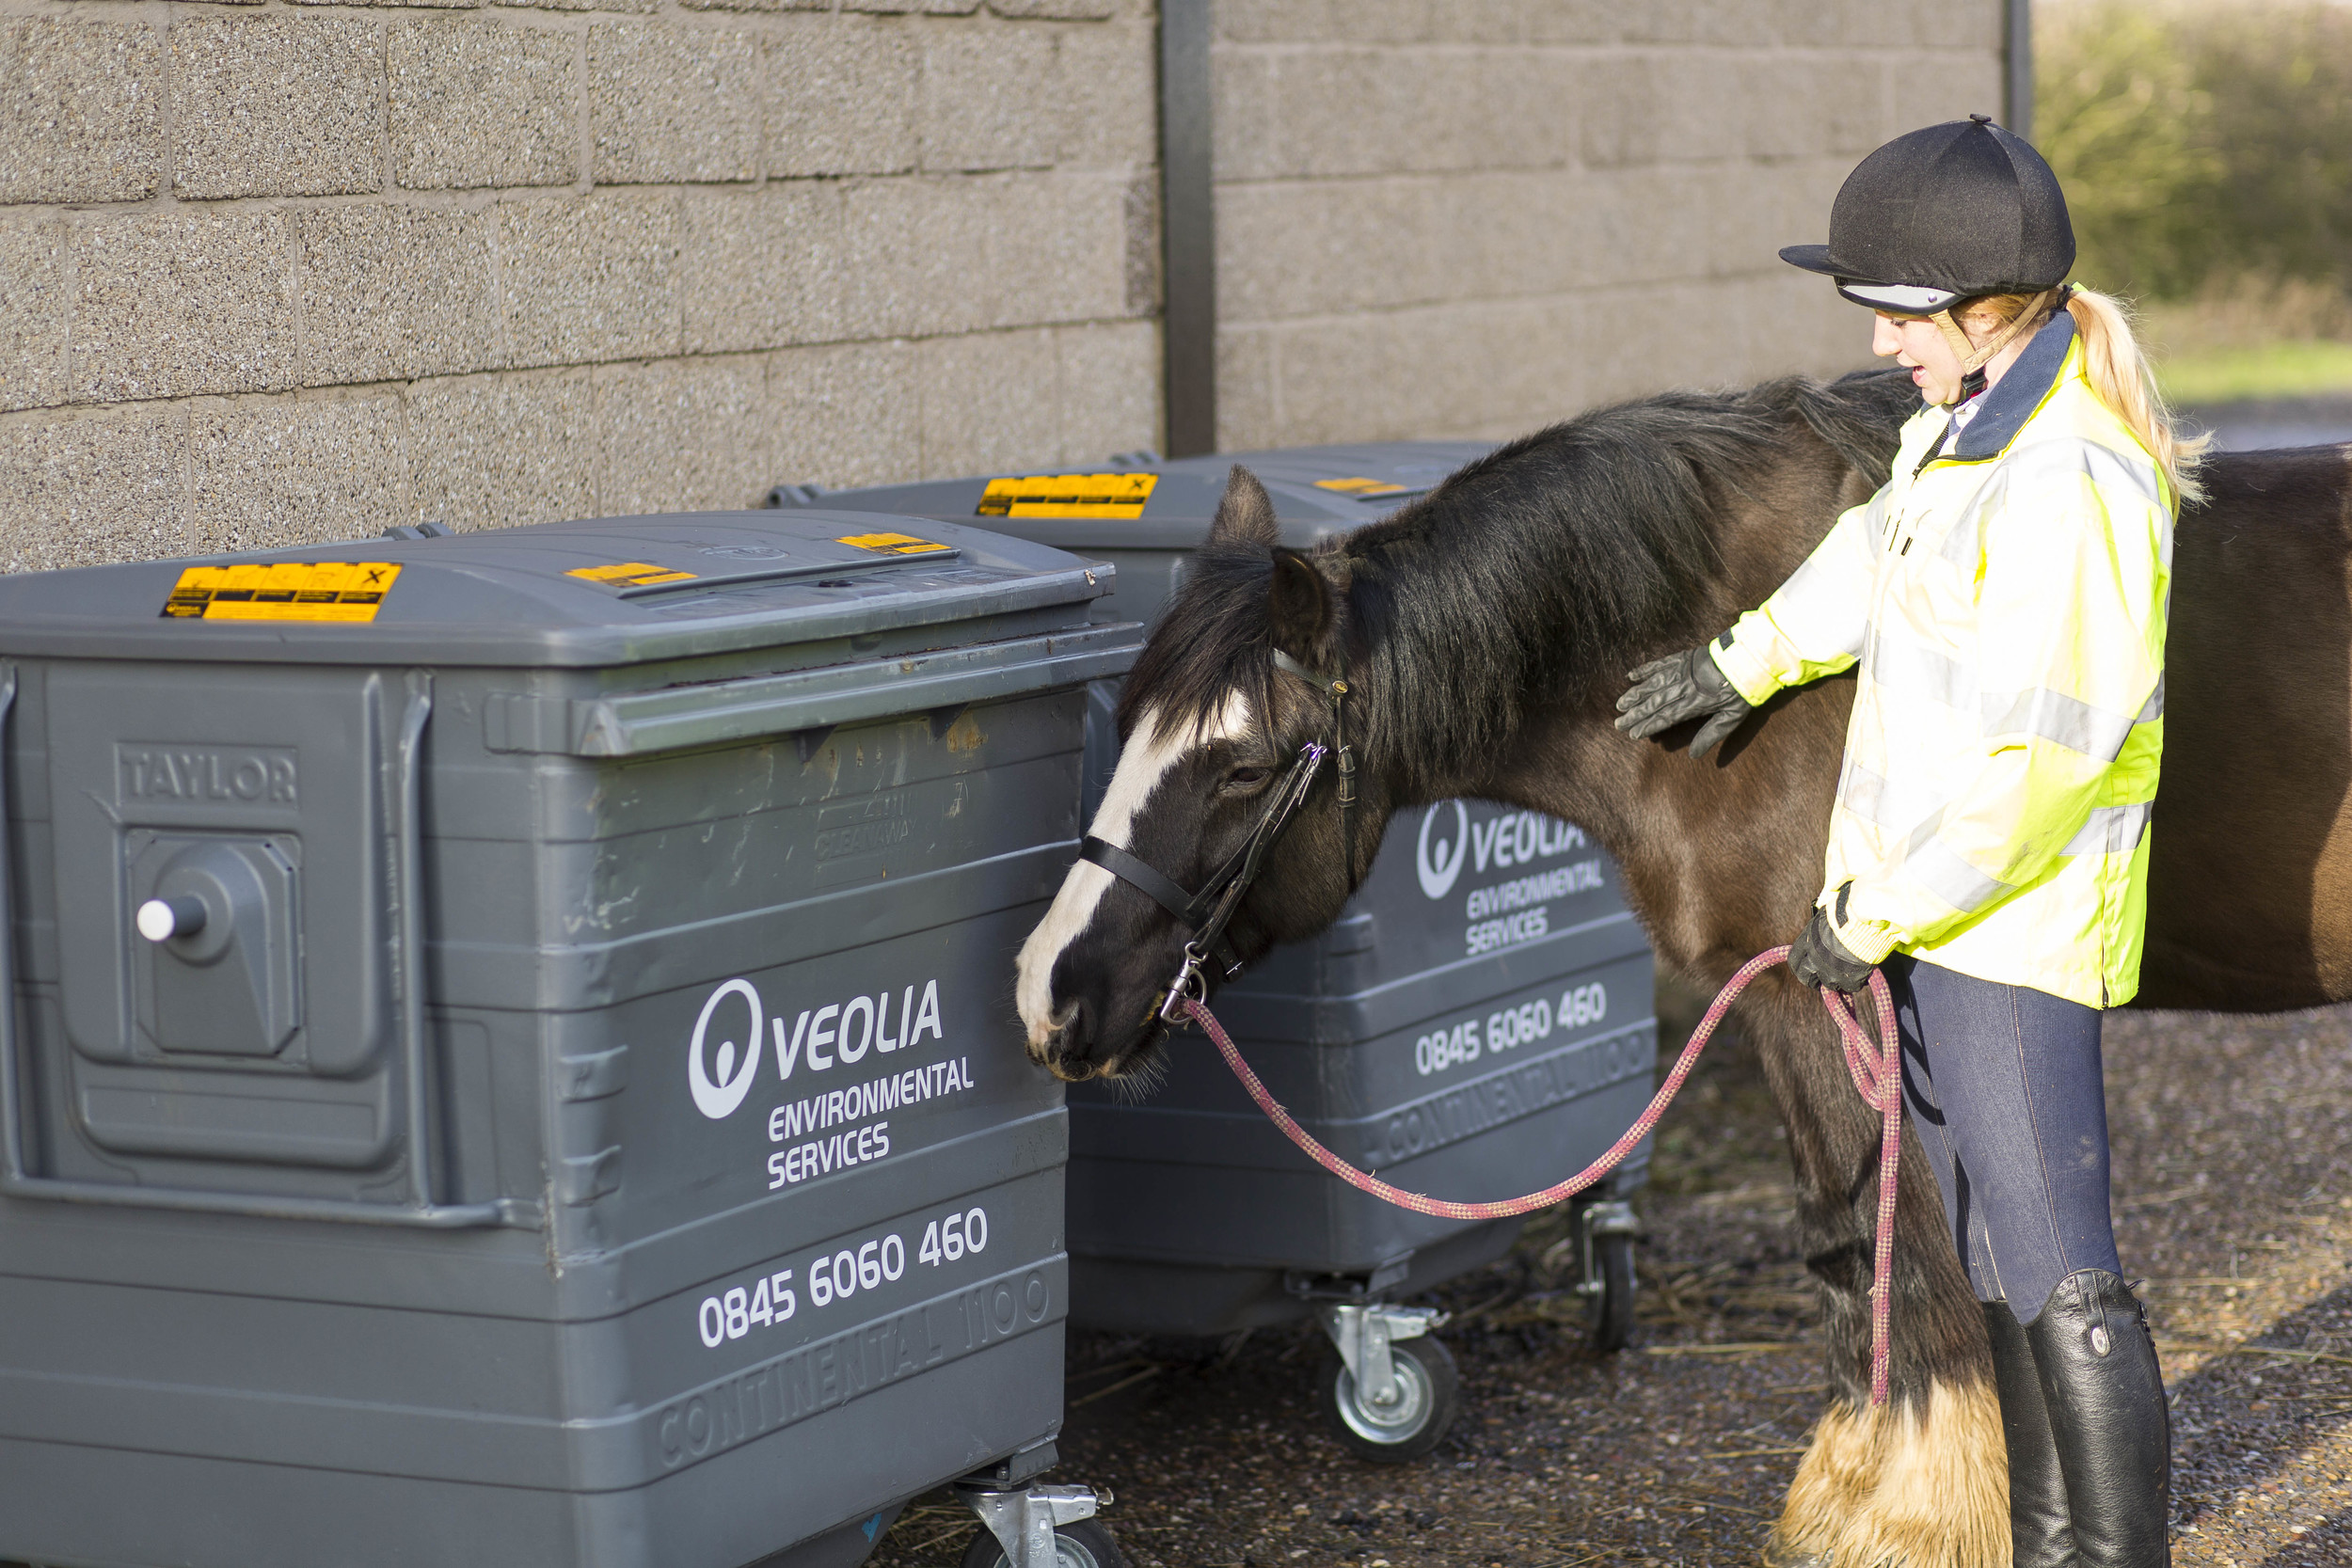 Introduce your horse to objects he might find on his hacks, such as wheelie bins, road signs etc. and encourage him to touch them in a safe and calm environment.